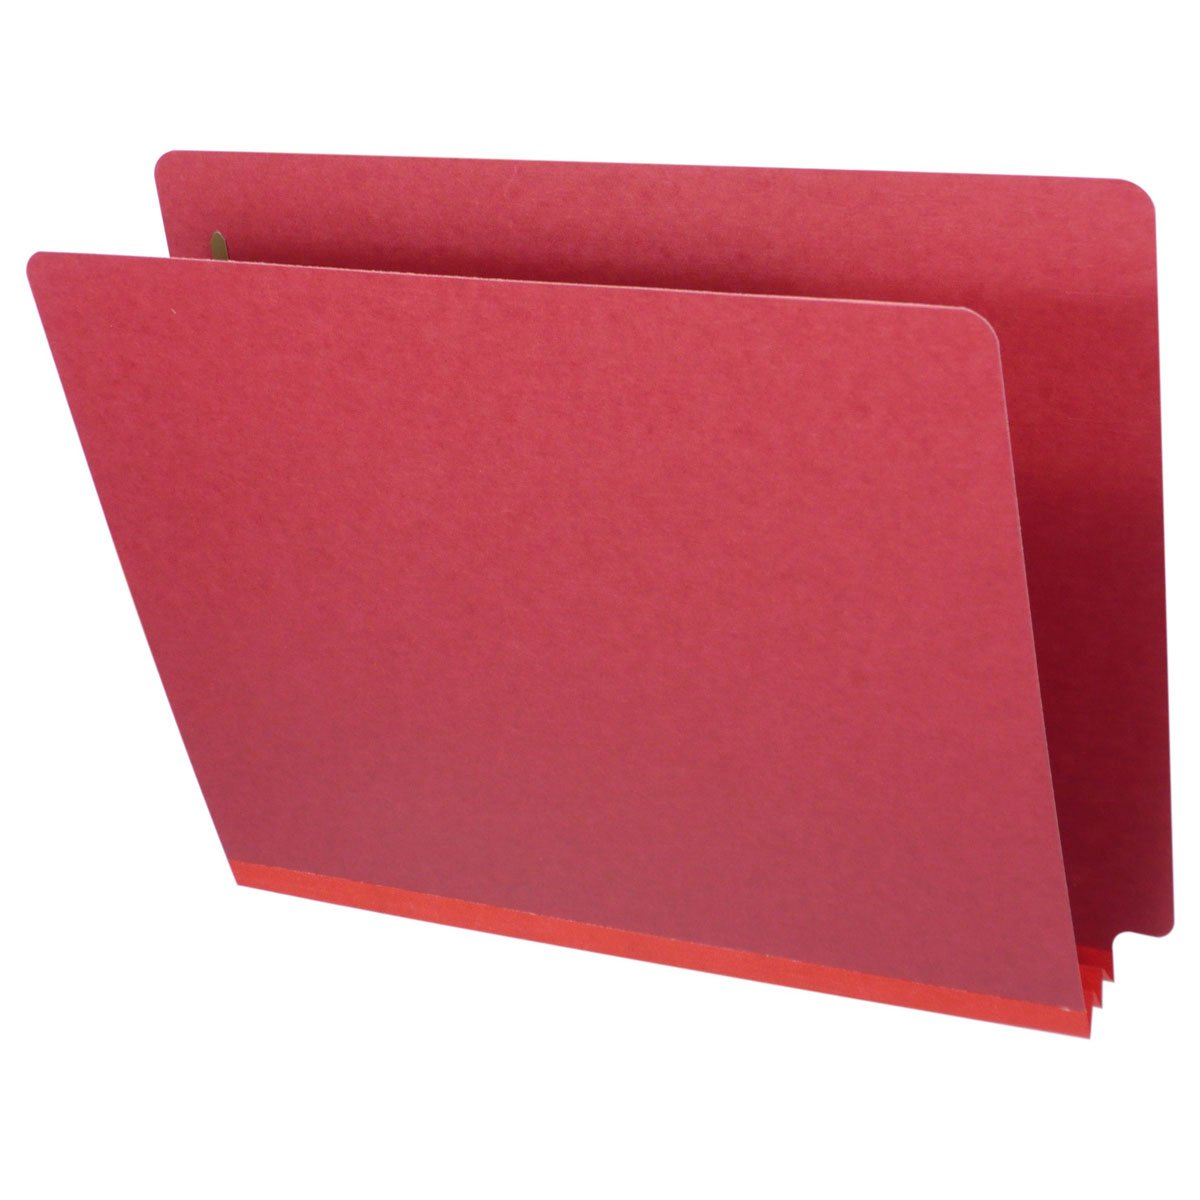 Fasteners Pos #1 /& #3 Box of 25 2 exp Red Letter Size End Tab Pressboard Folders